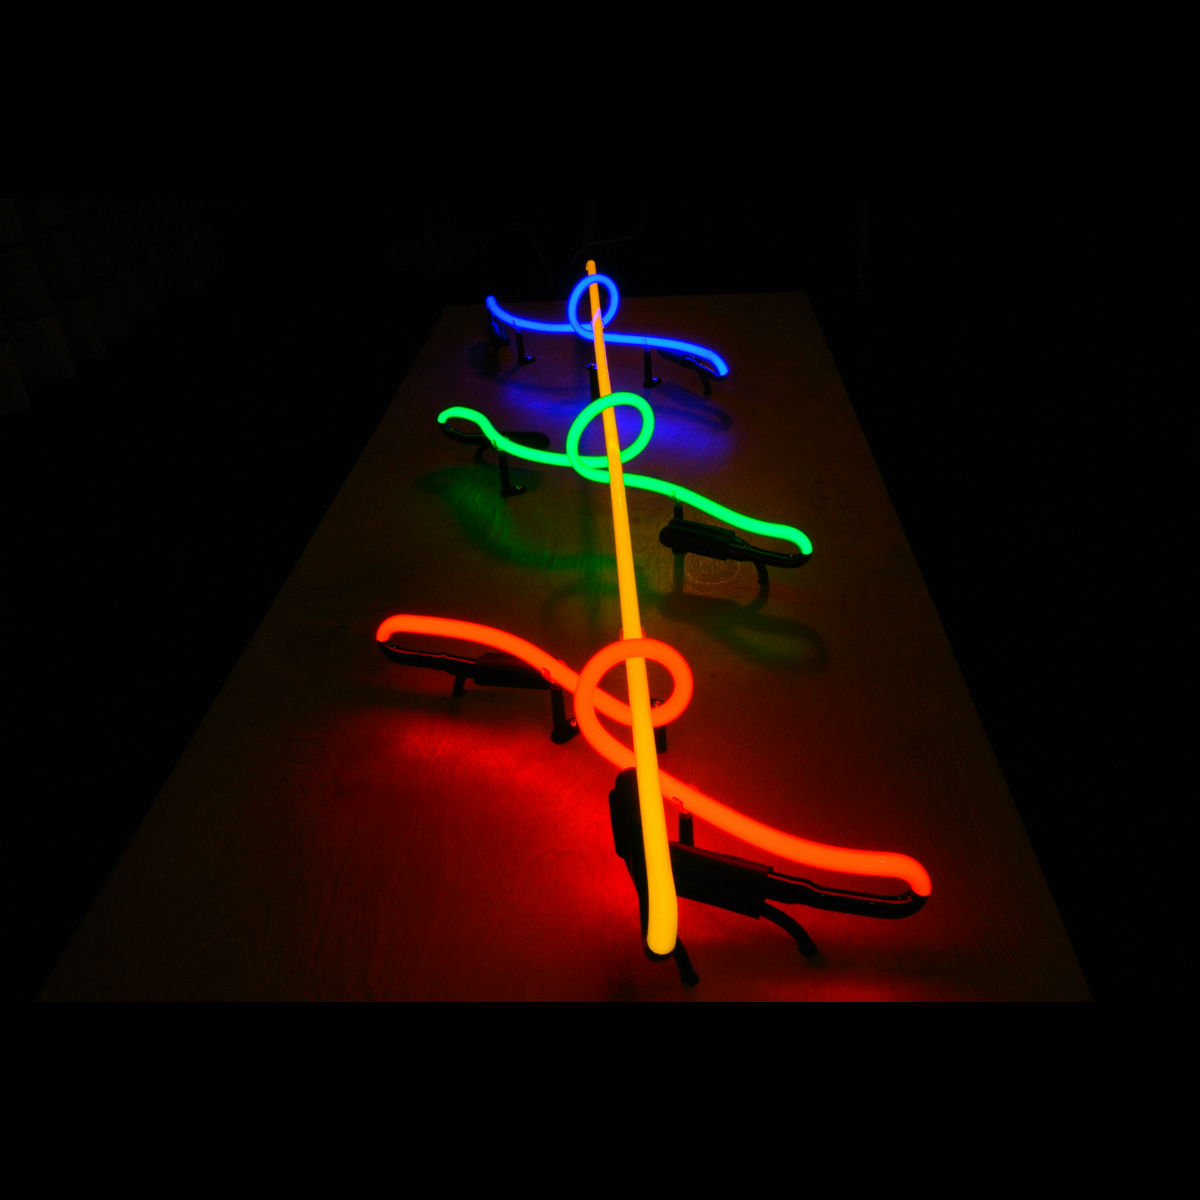 Custom Designer Neon Light Sculptures by John Barton - BartonNeonMagic.com